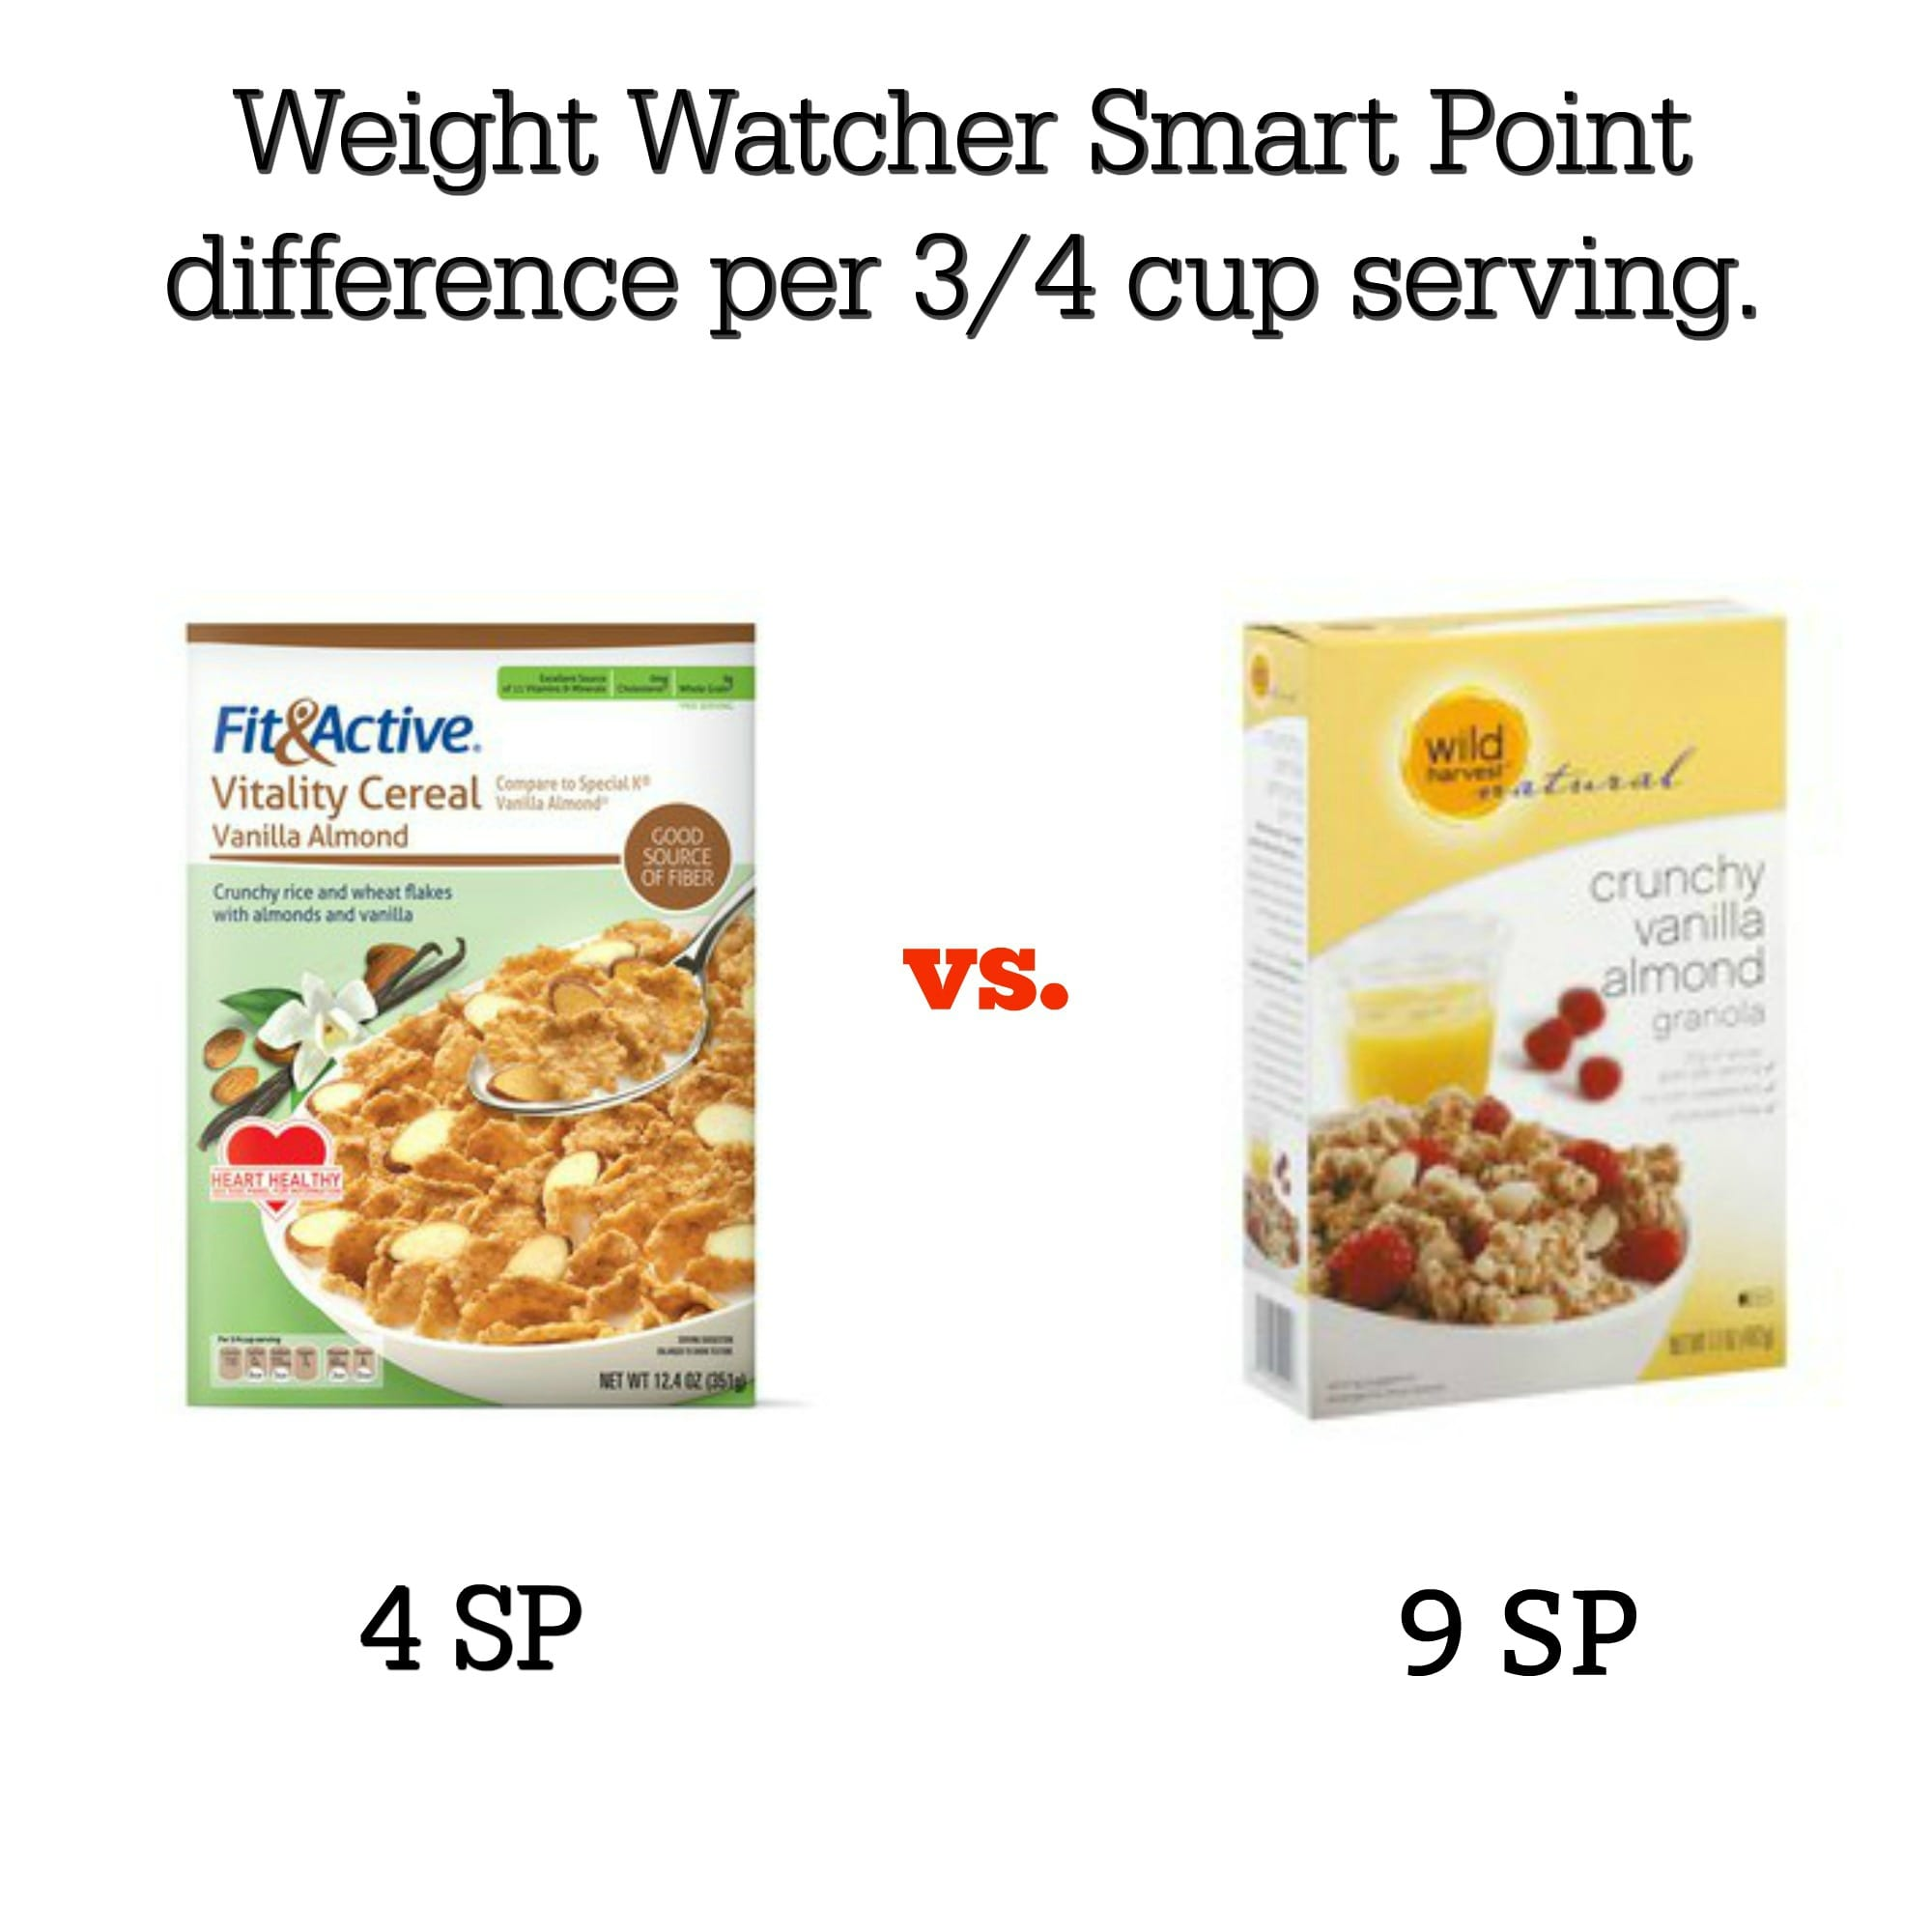 20 cereals that are low in weight watchers freestyle smart points wild harvest natural crunchy vanilla almond granola cereal is more than double that with 9 smart points per 34 cup serving ccuart Image collections